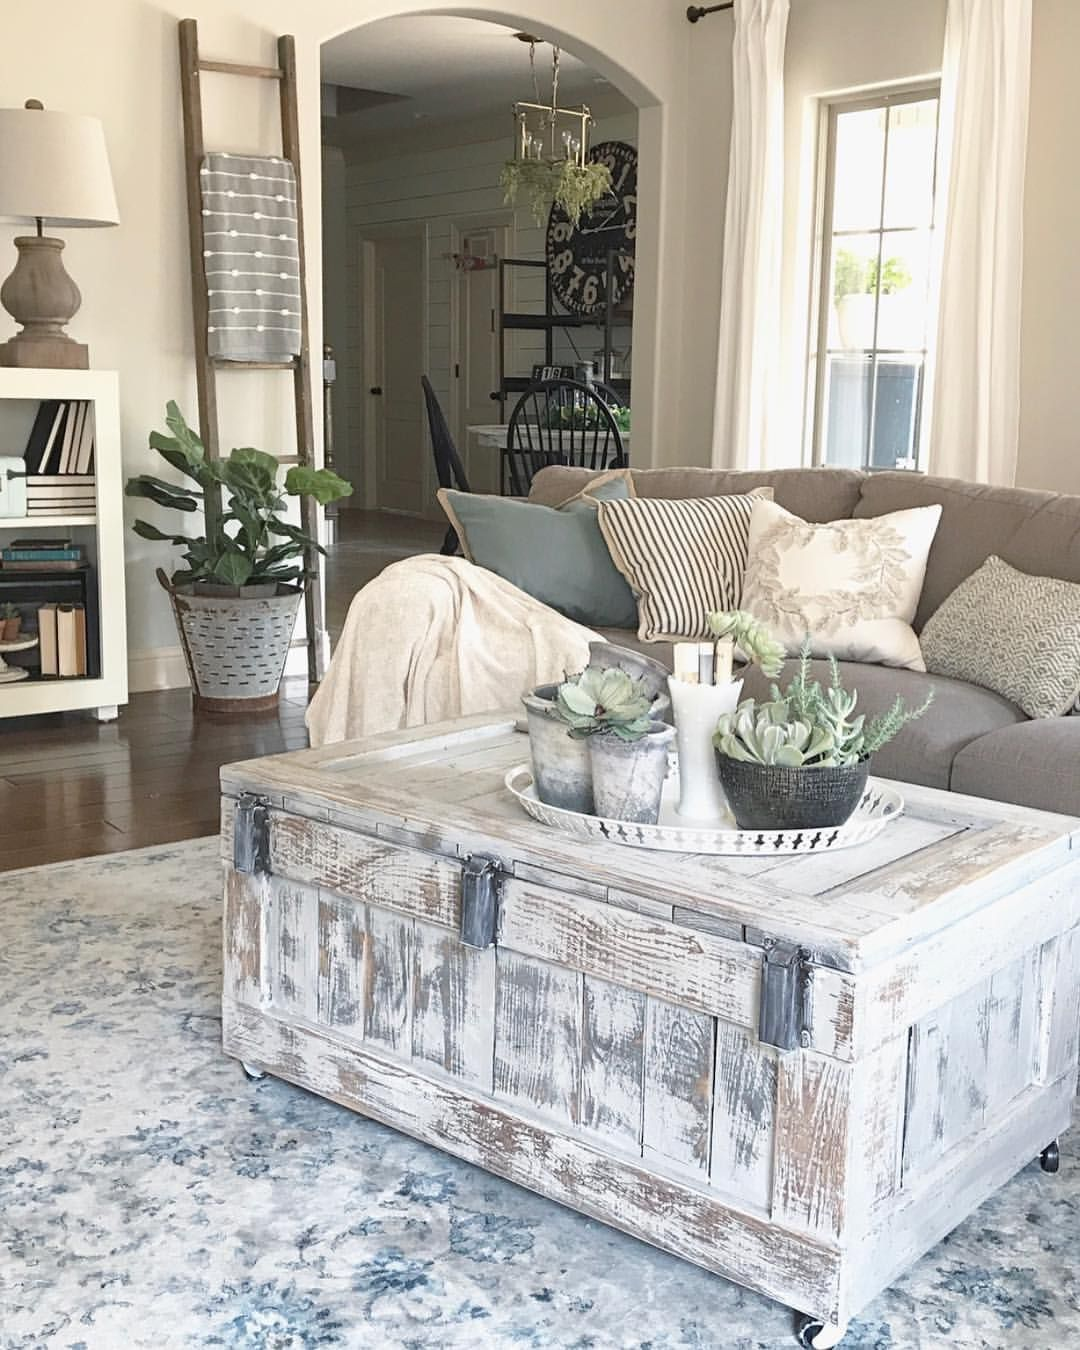 Pin by Janelle Fitzhugh on Living rooms Room decor, Farm